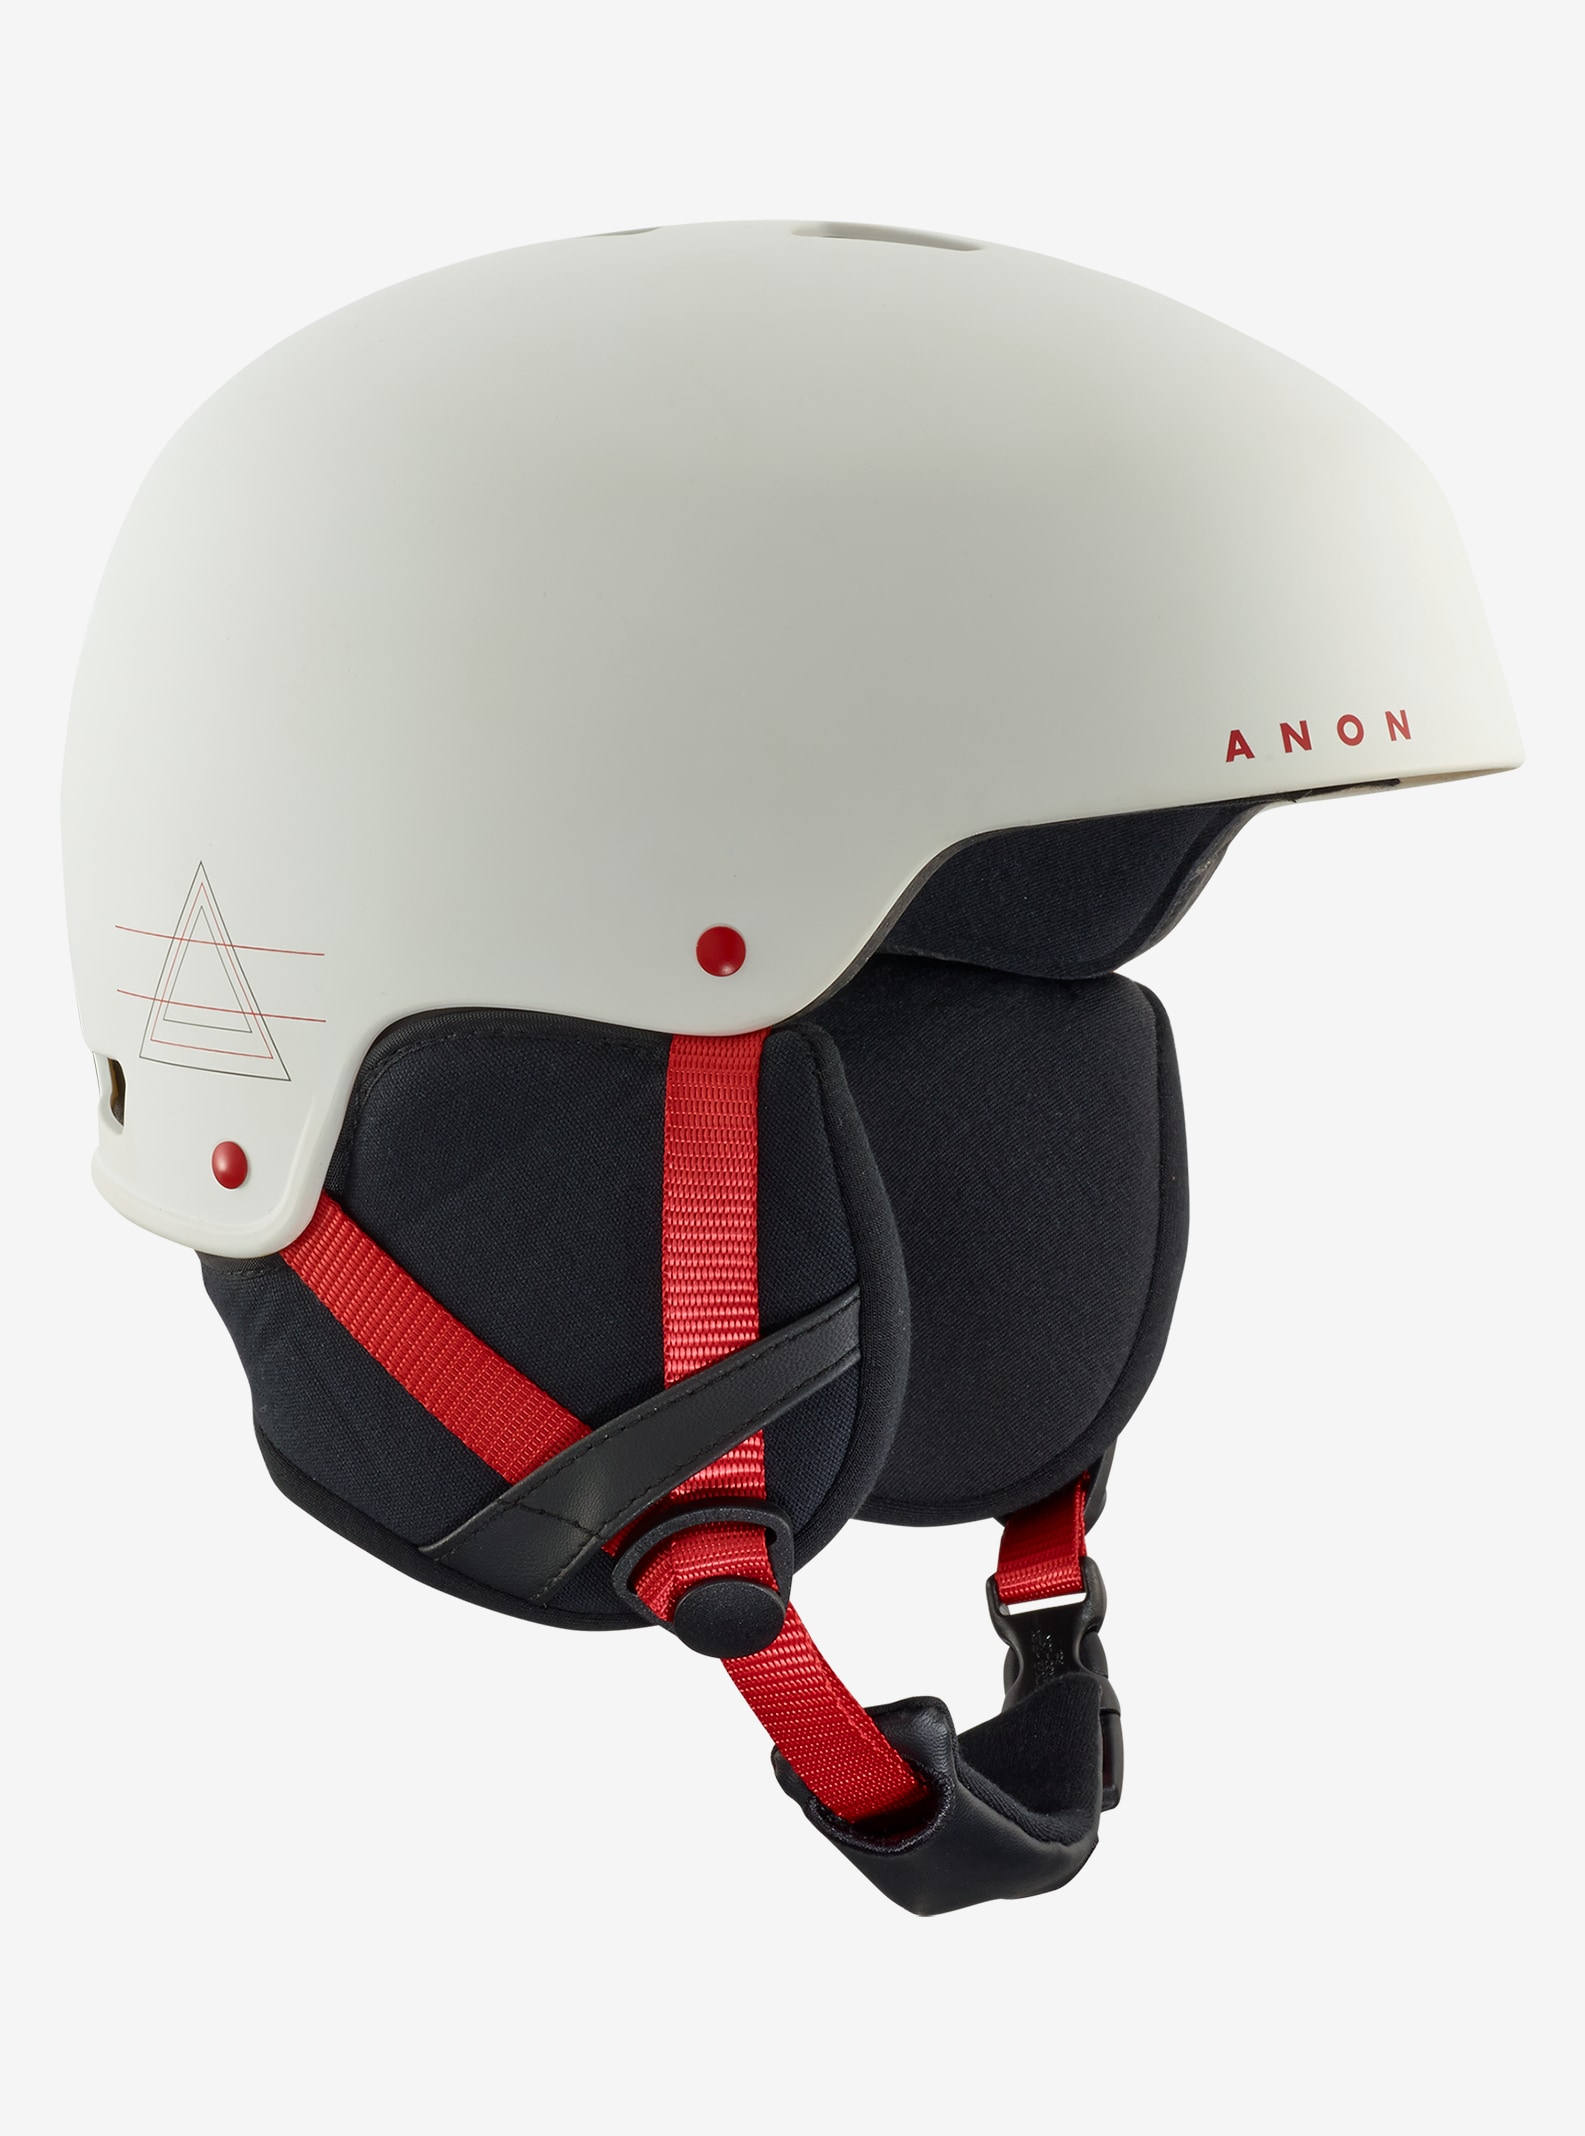 Men's Anon Striker Helmet shown in White